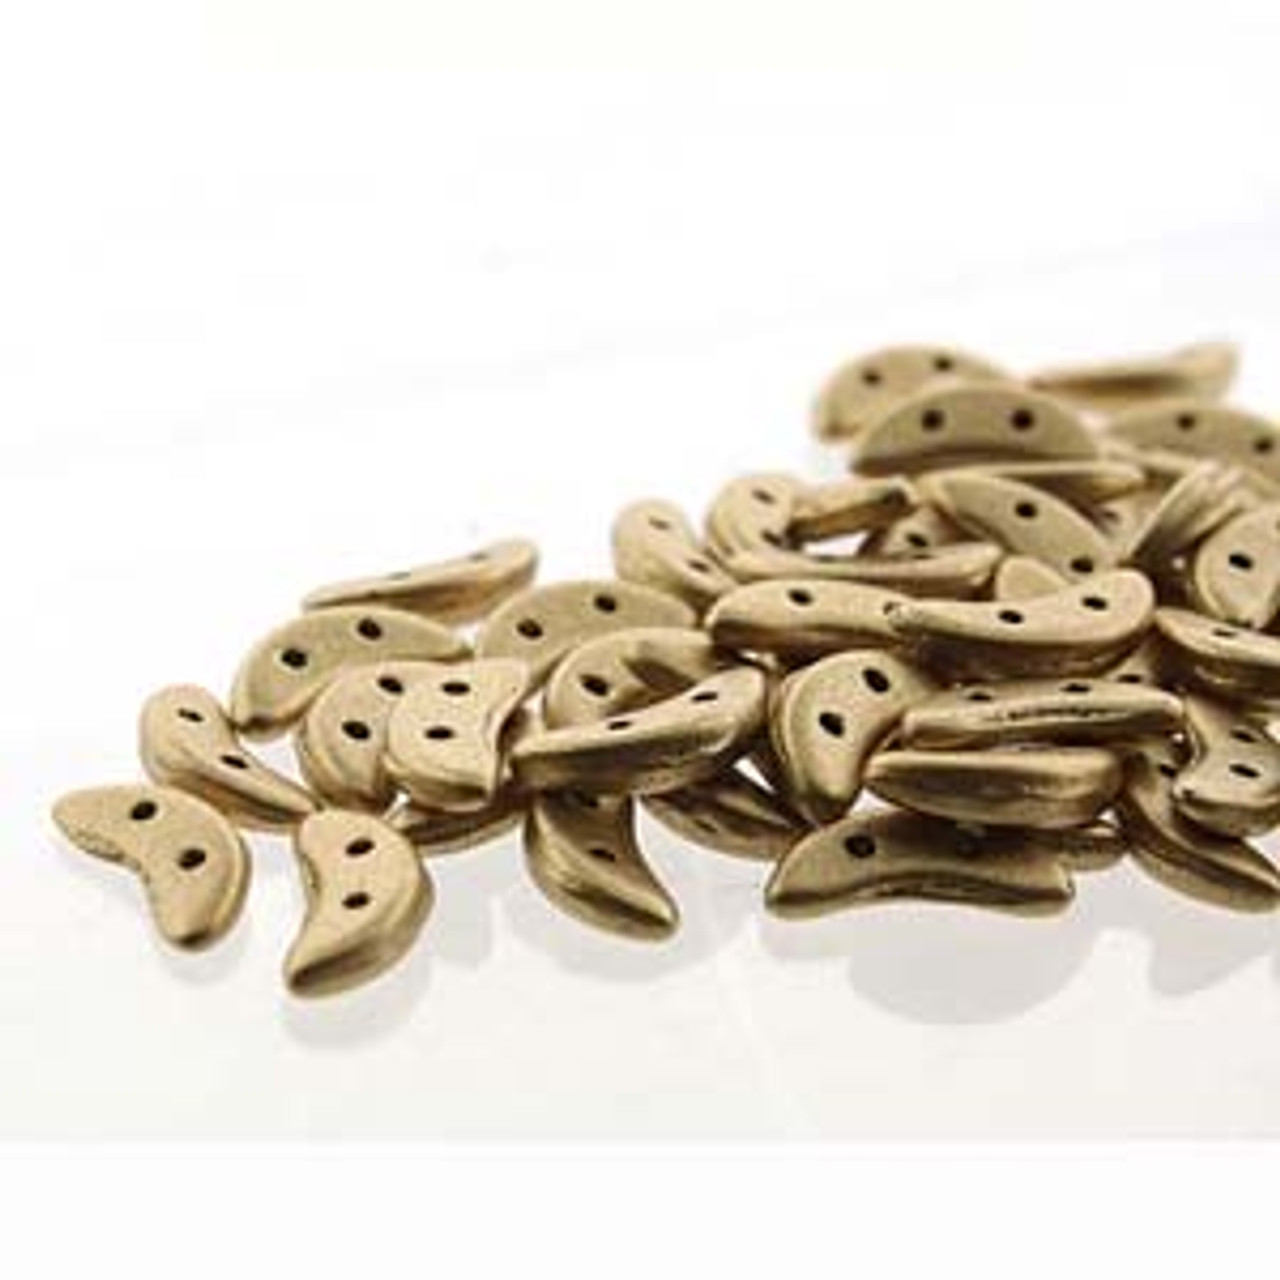 3x10mm Metallic Flax Crescent Beads (8 Grams)